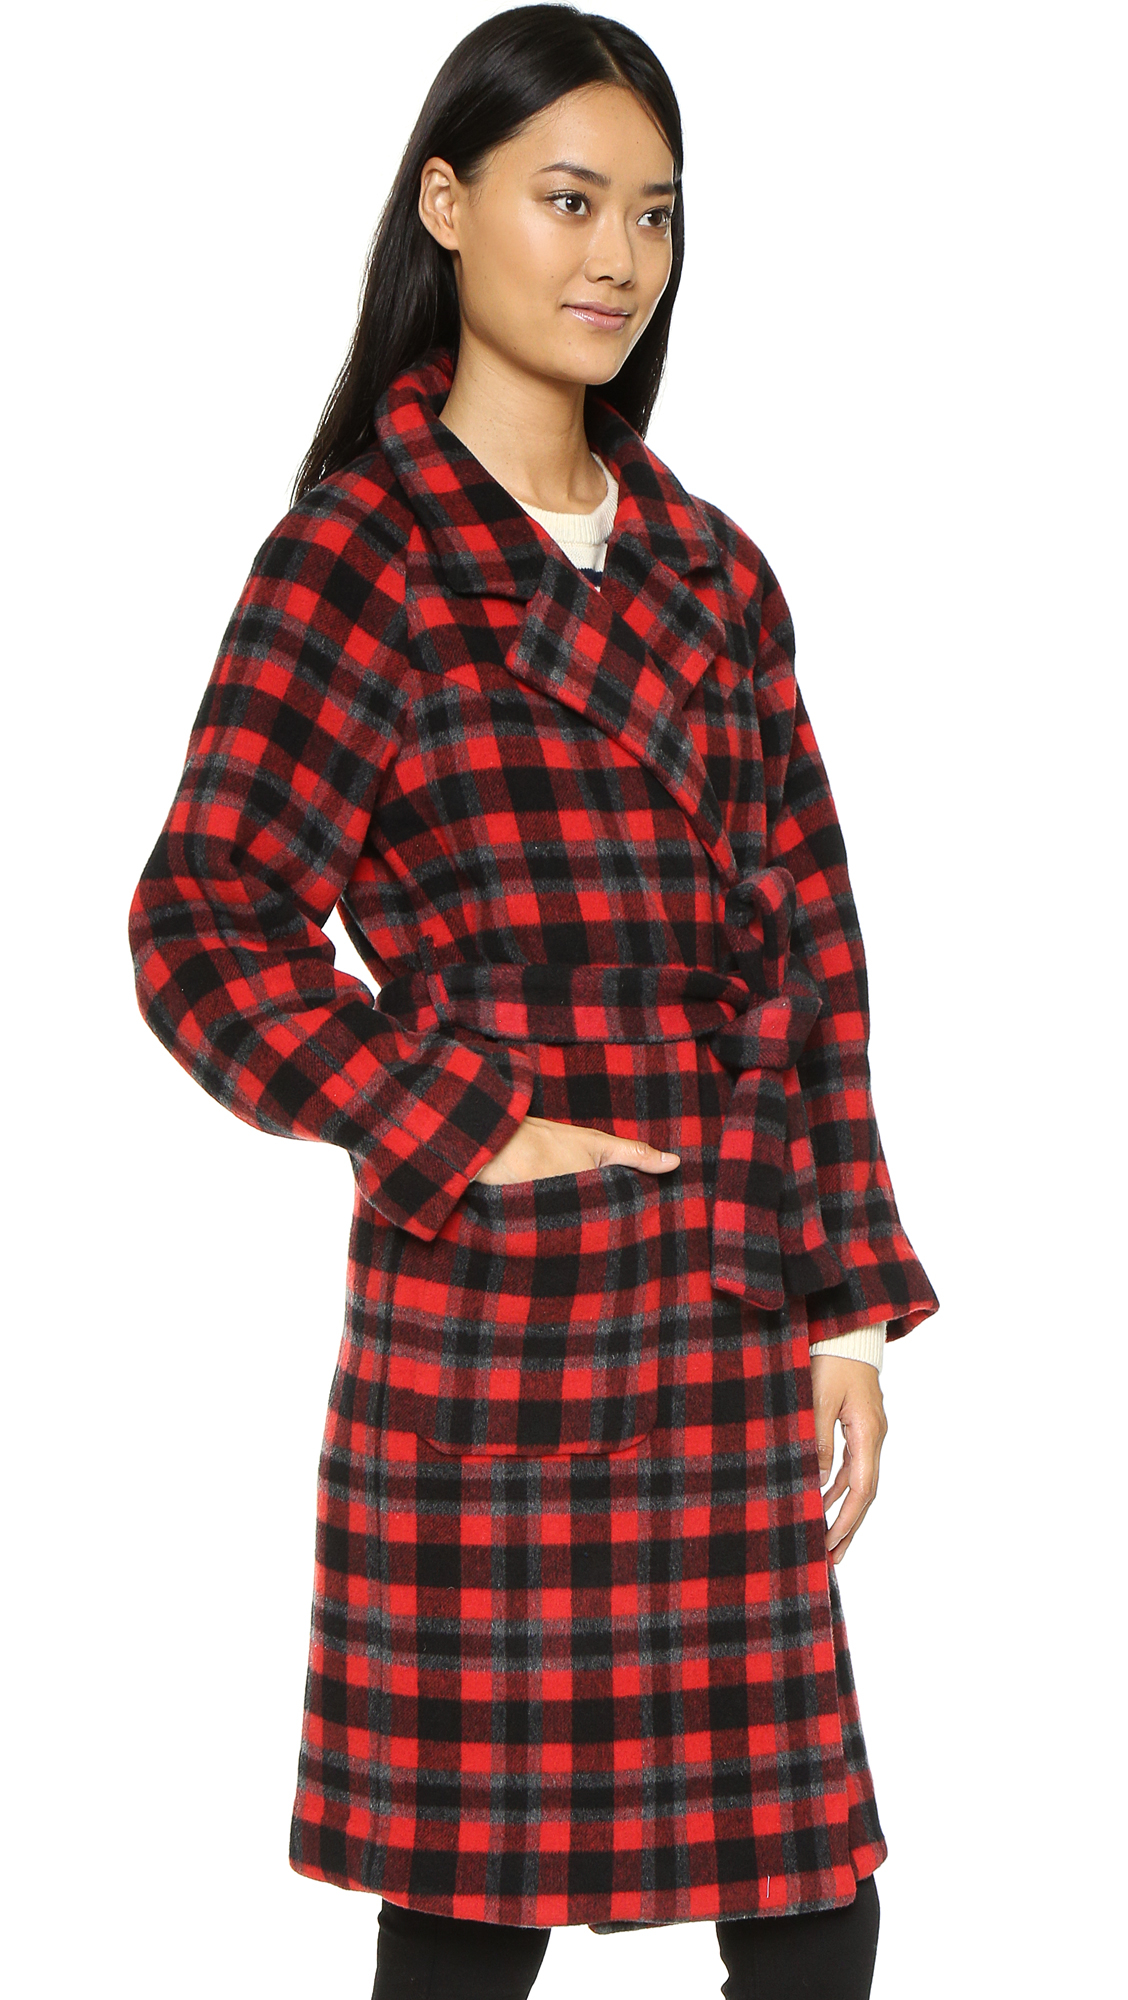 Ganni State Street Coat - Pompeian Red Check | Lyst